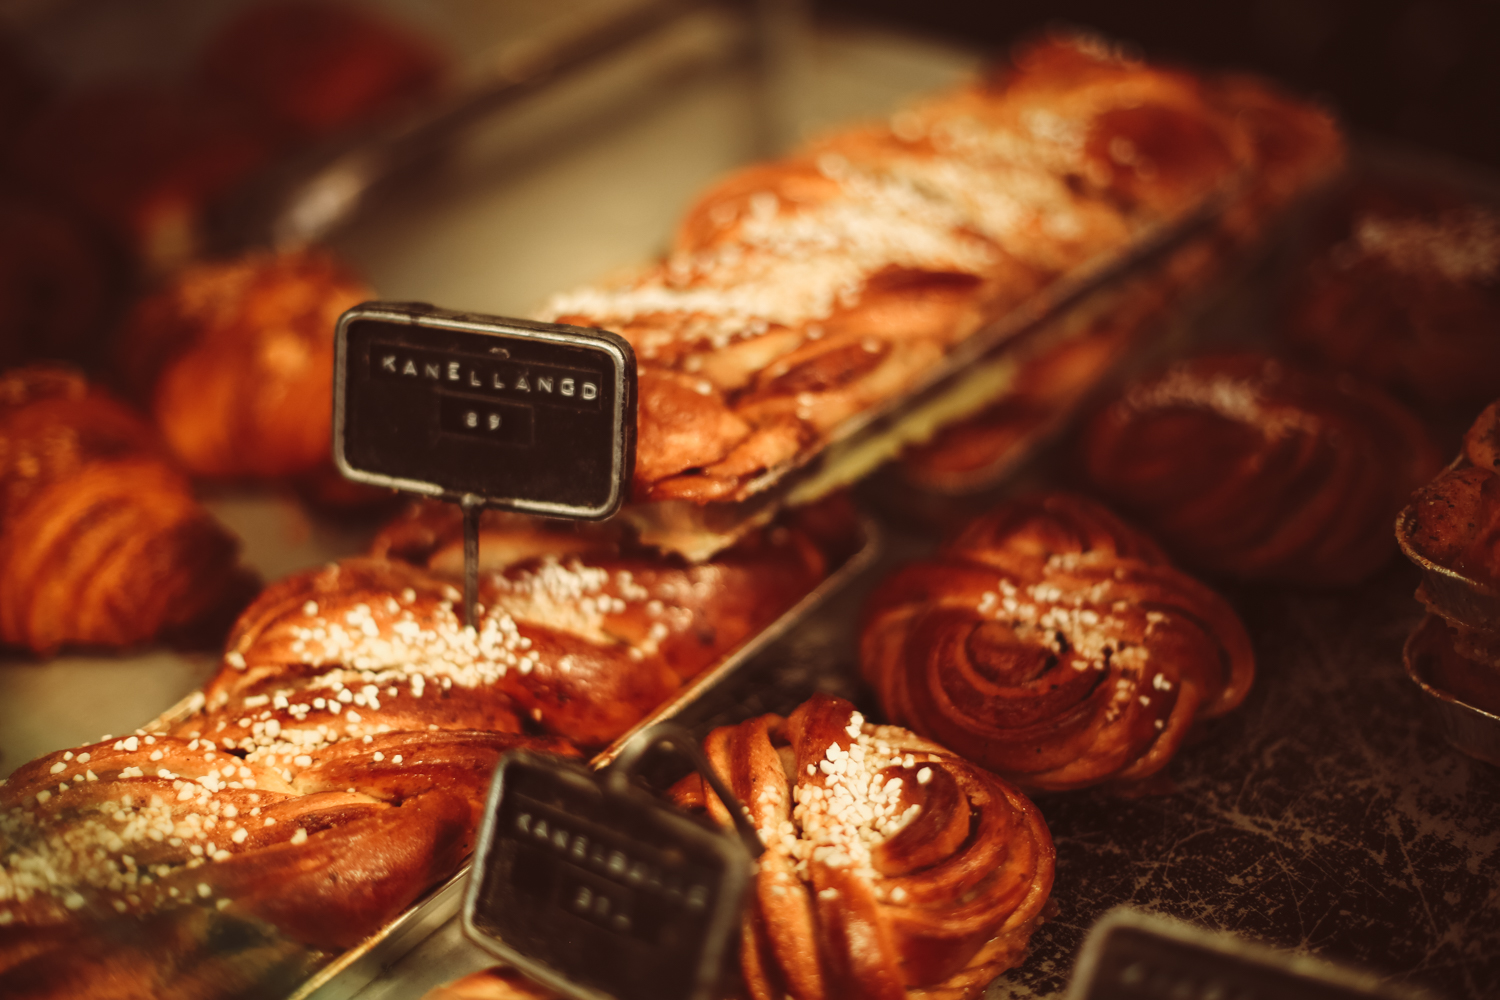 A must-eat when in Stockholm are the Cinnabun's from Fabrique bakery (it's right next door to Spago restaurant!)